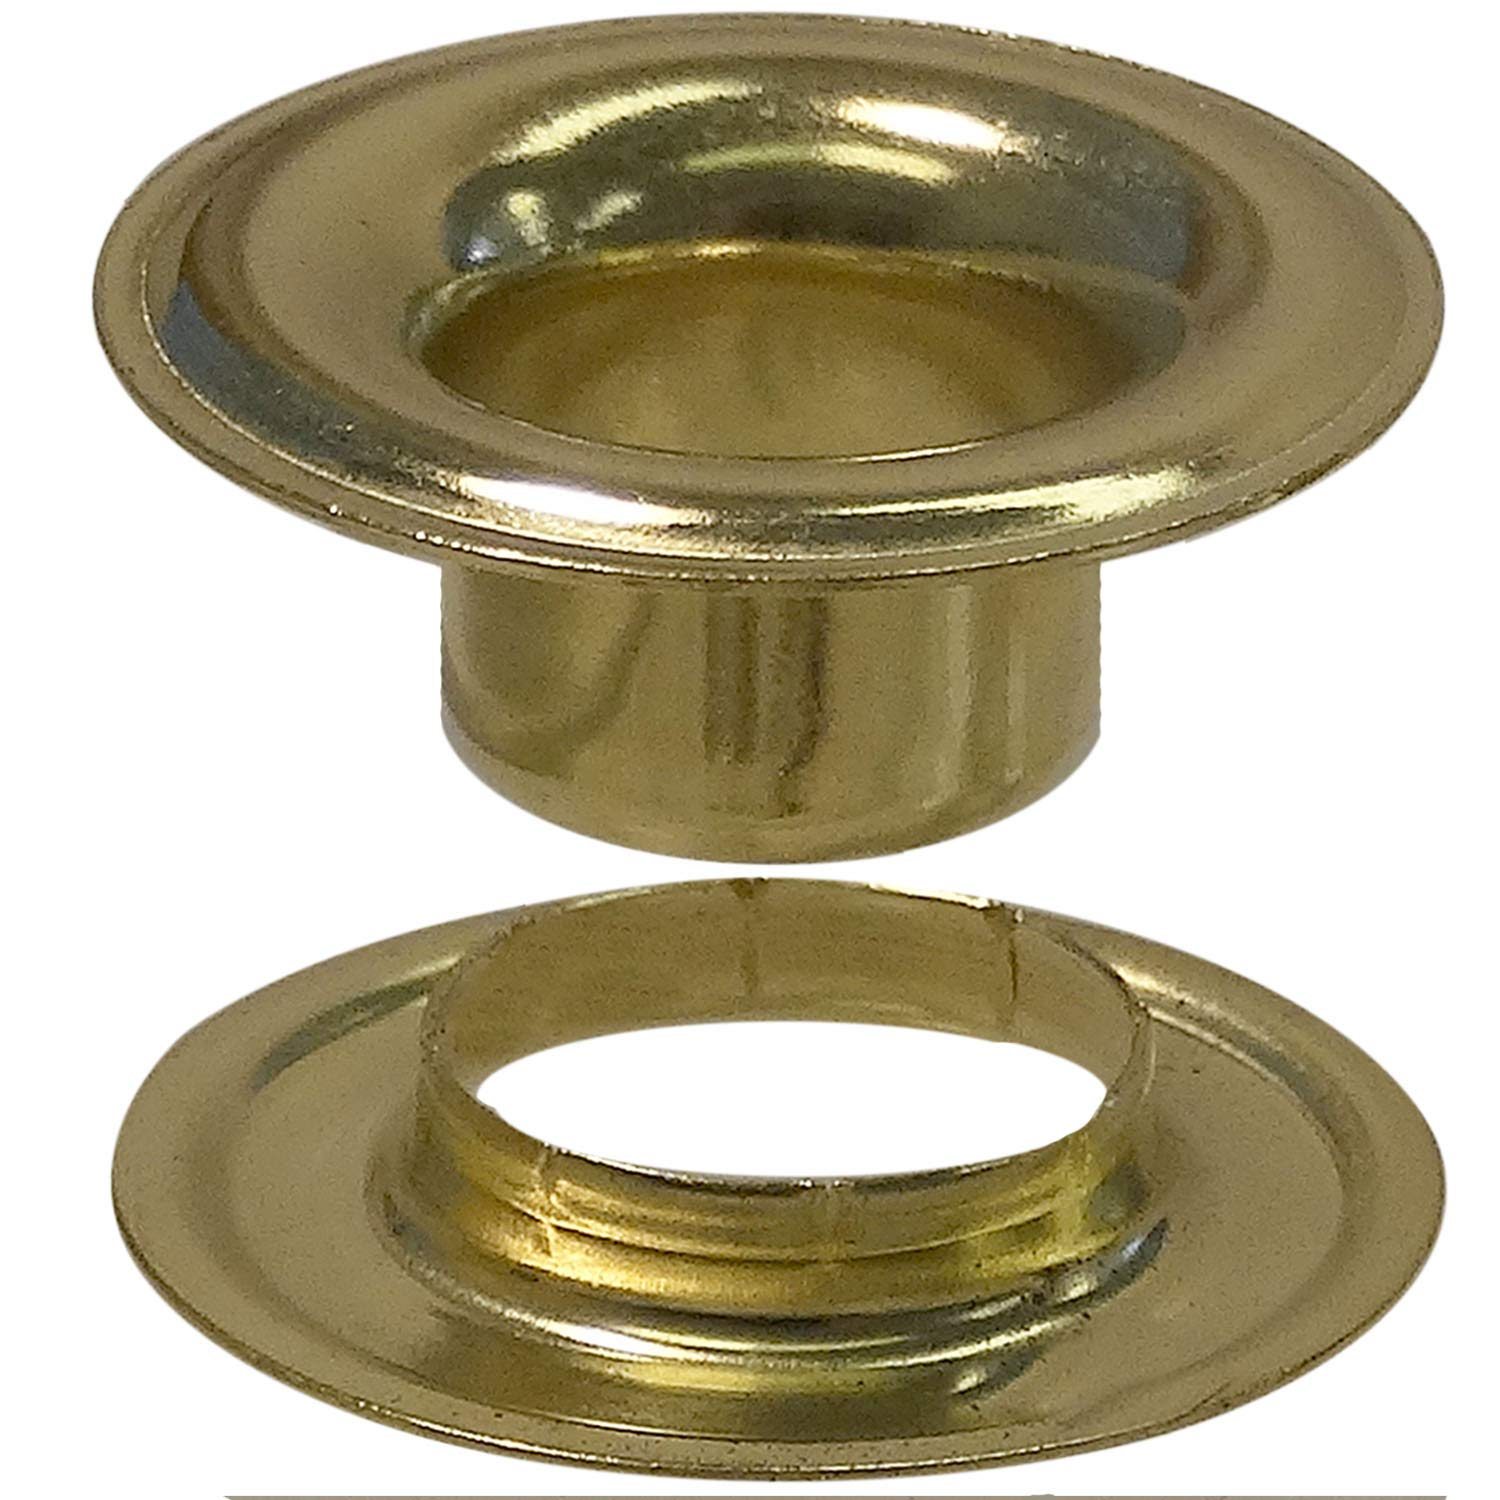 Stimpson Sheet Metal Grommet and Teeth Washer Brass Durable, Reliable, Heavy-Duty #3 Set (3,600 Pieces of Each)